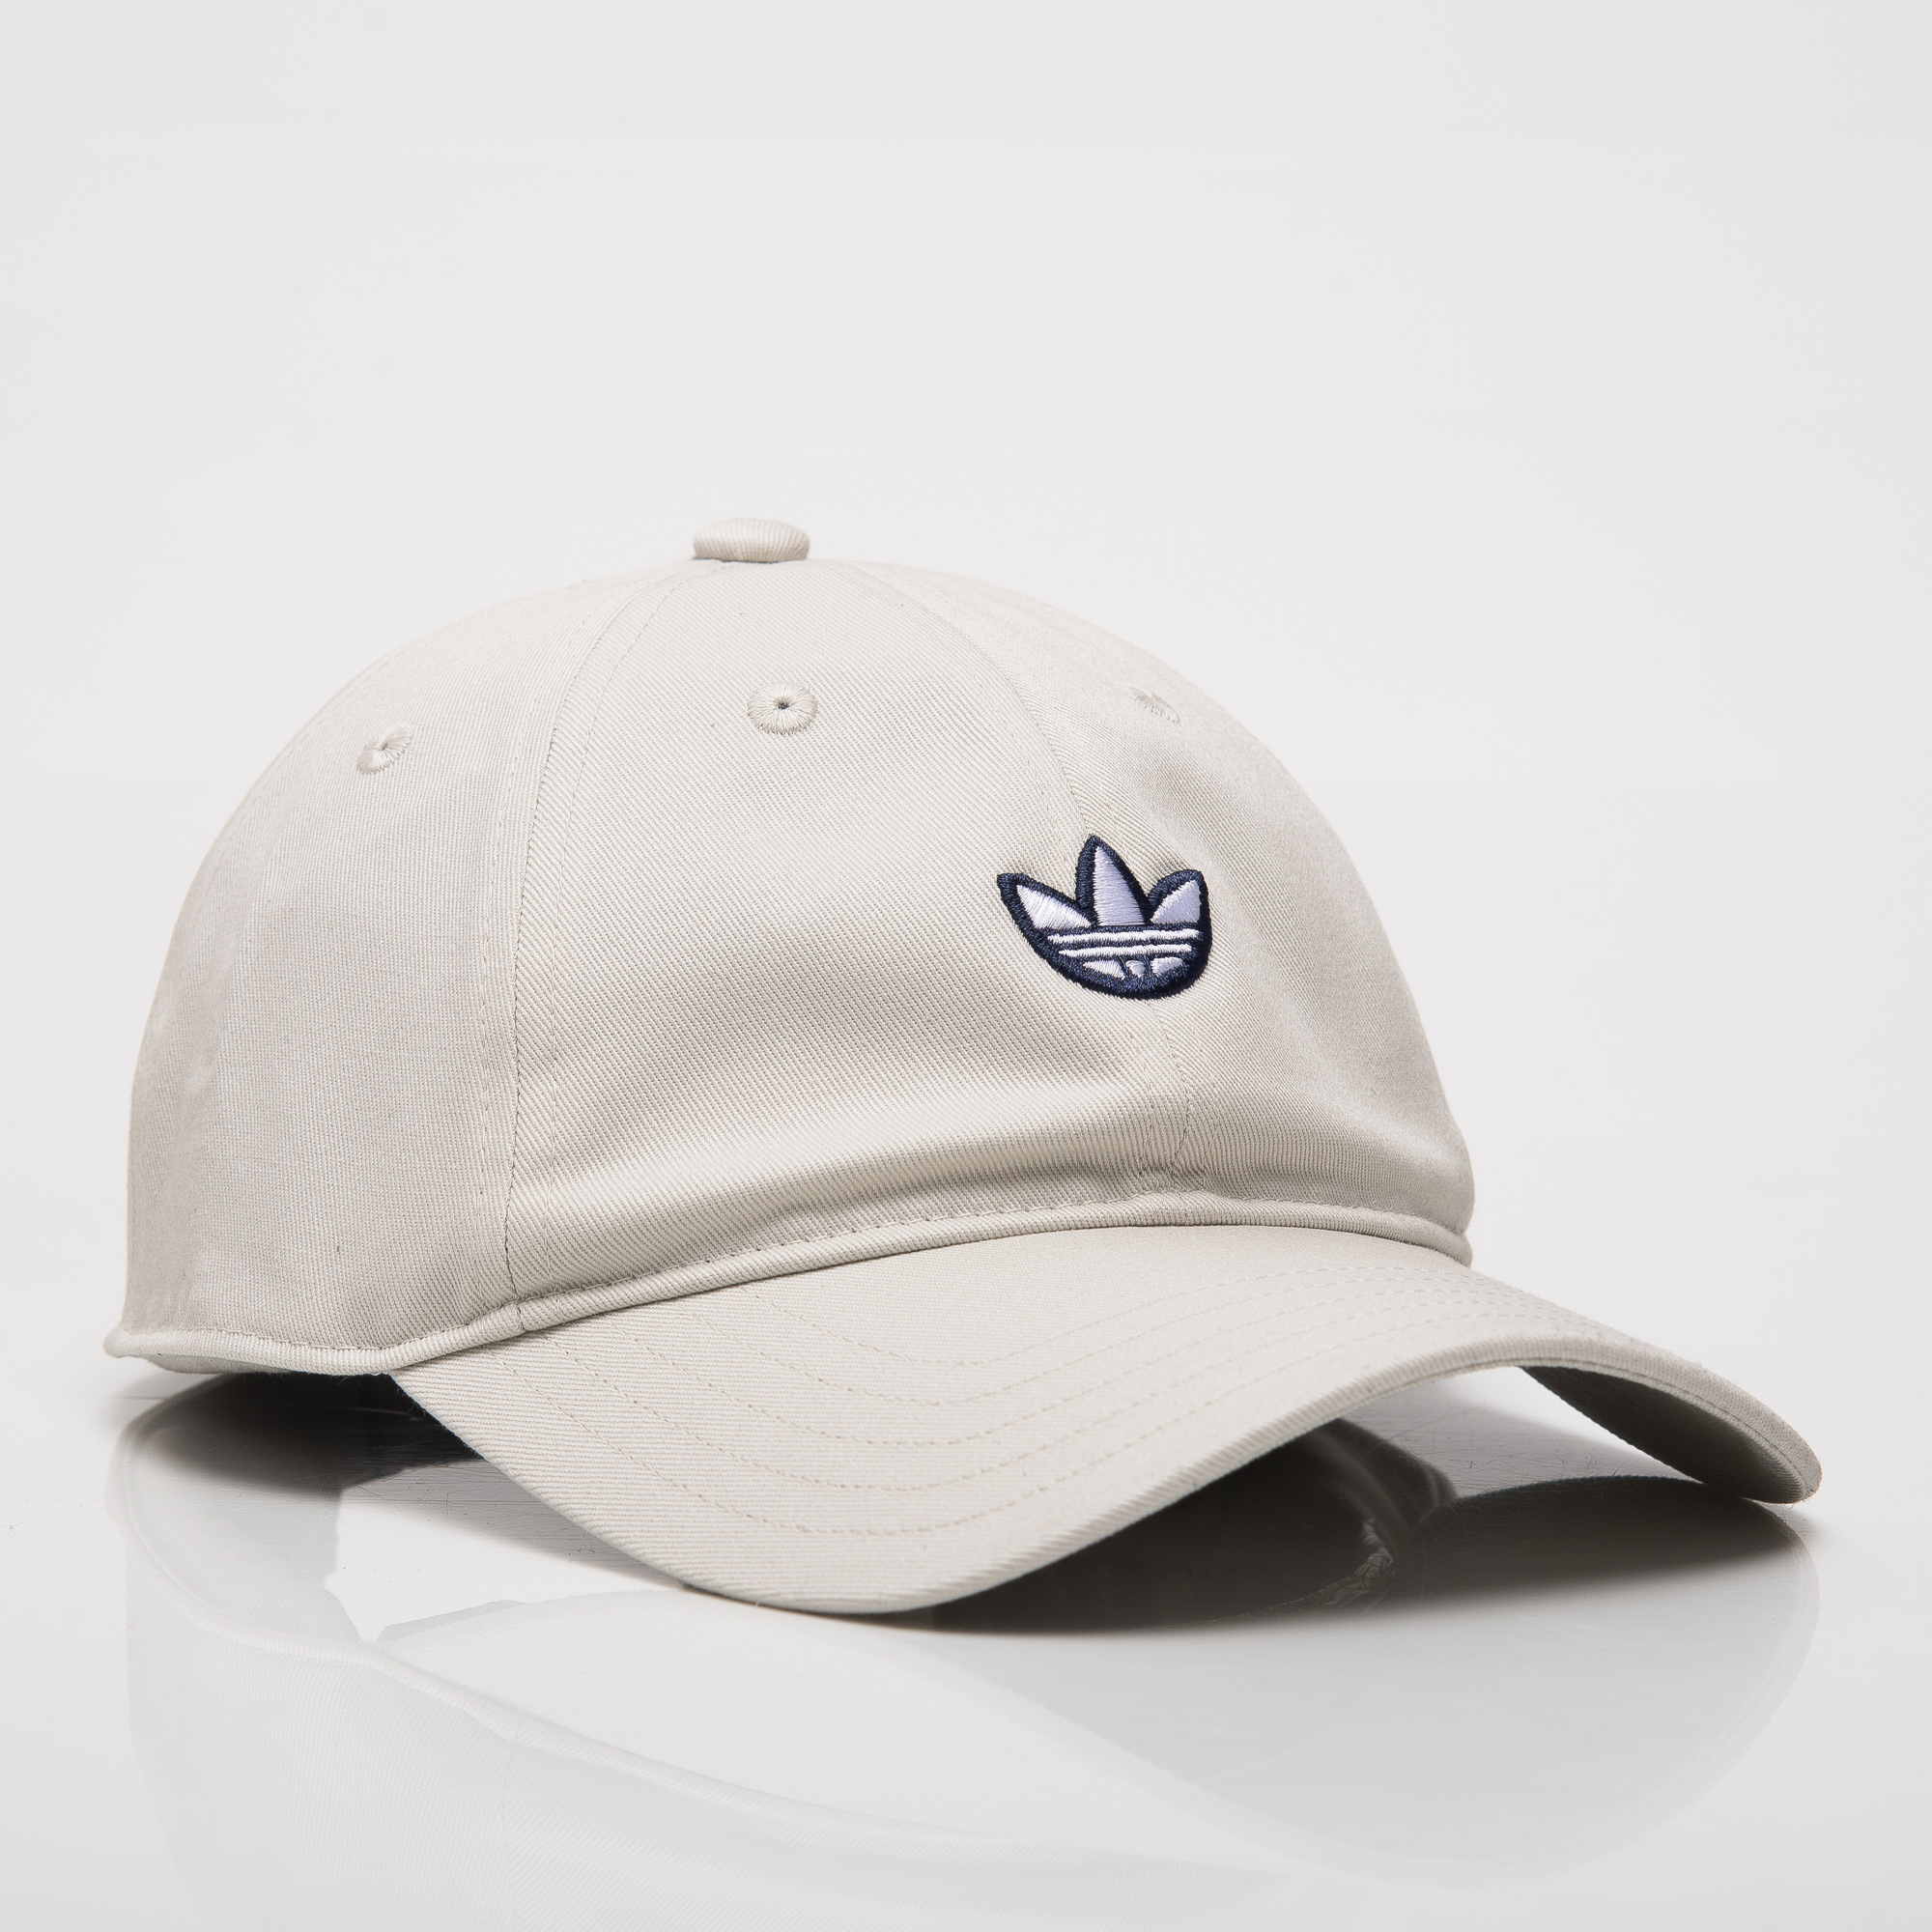 adidas Originals Samstag Dad Cap SPORTING GOODS Caps